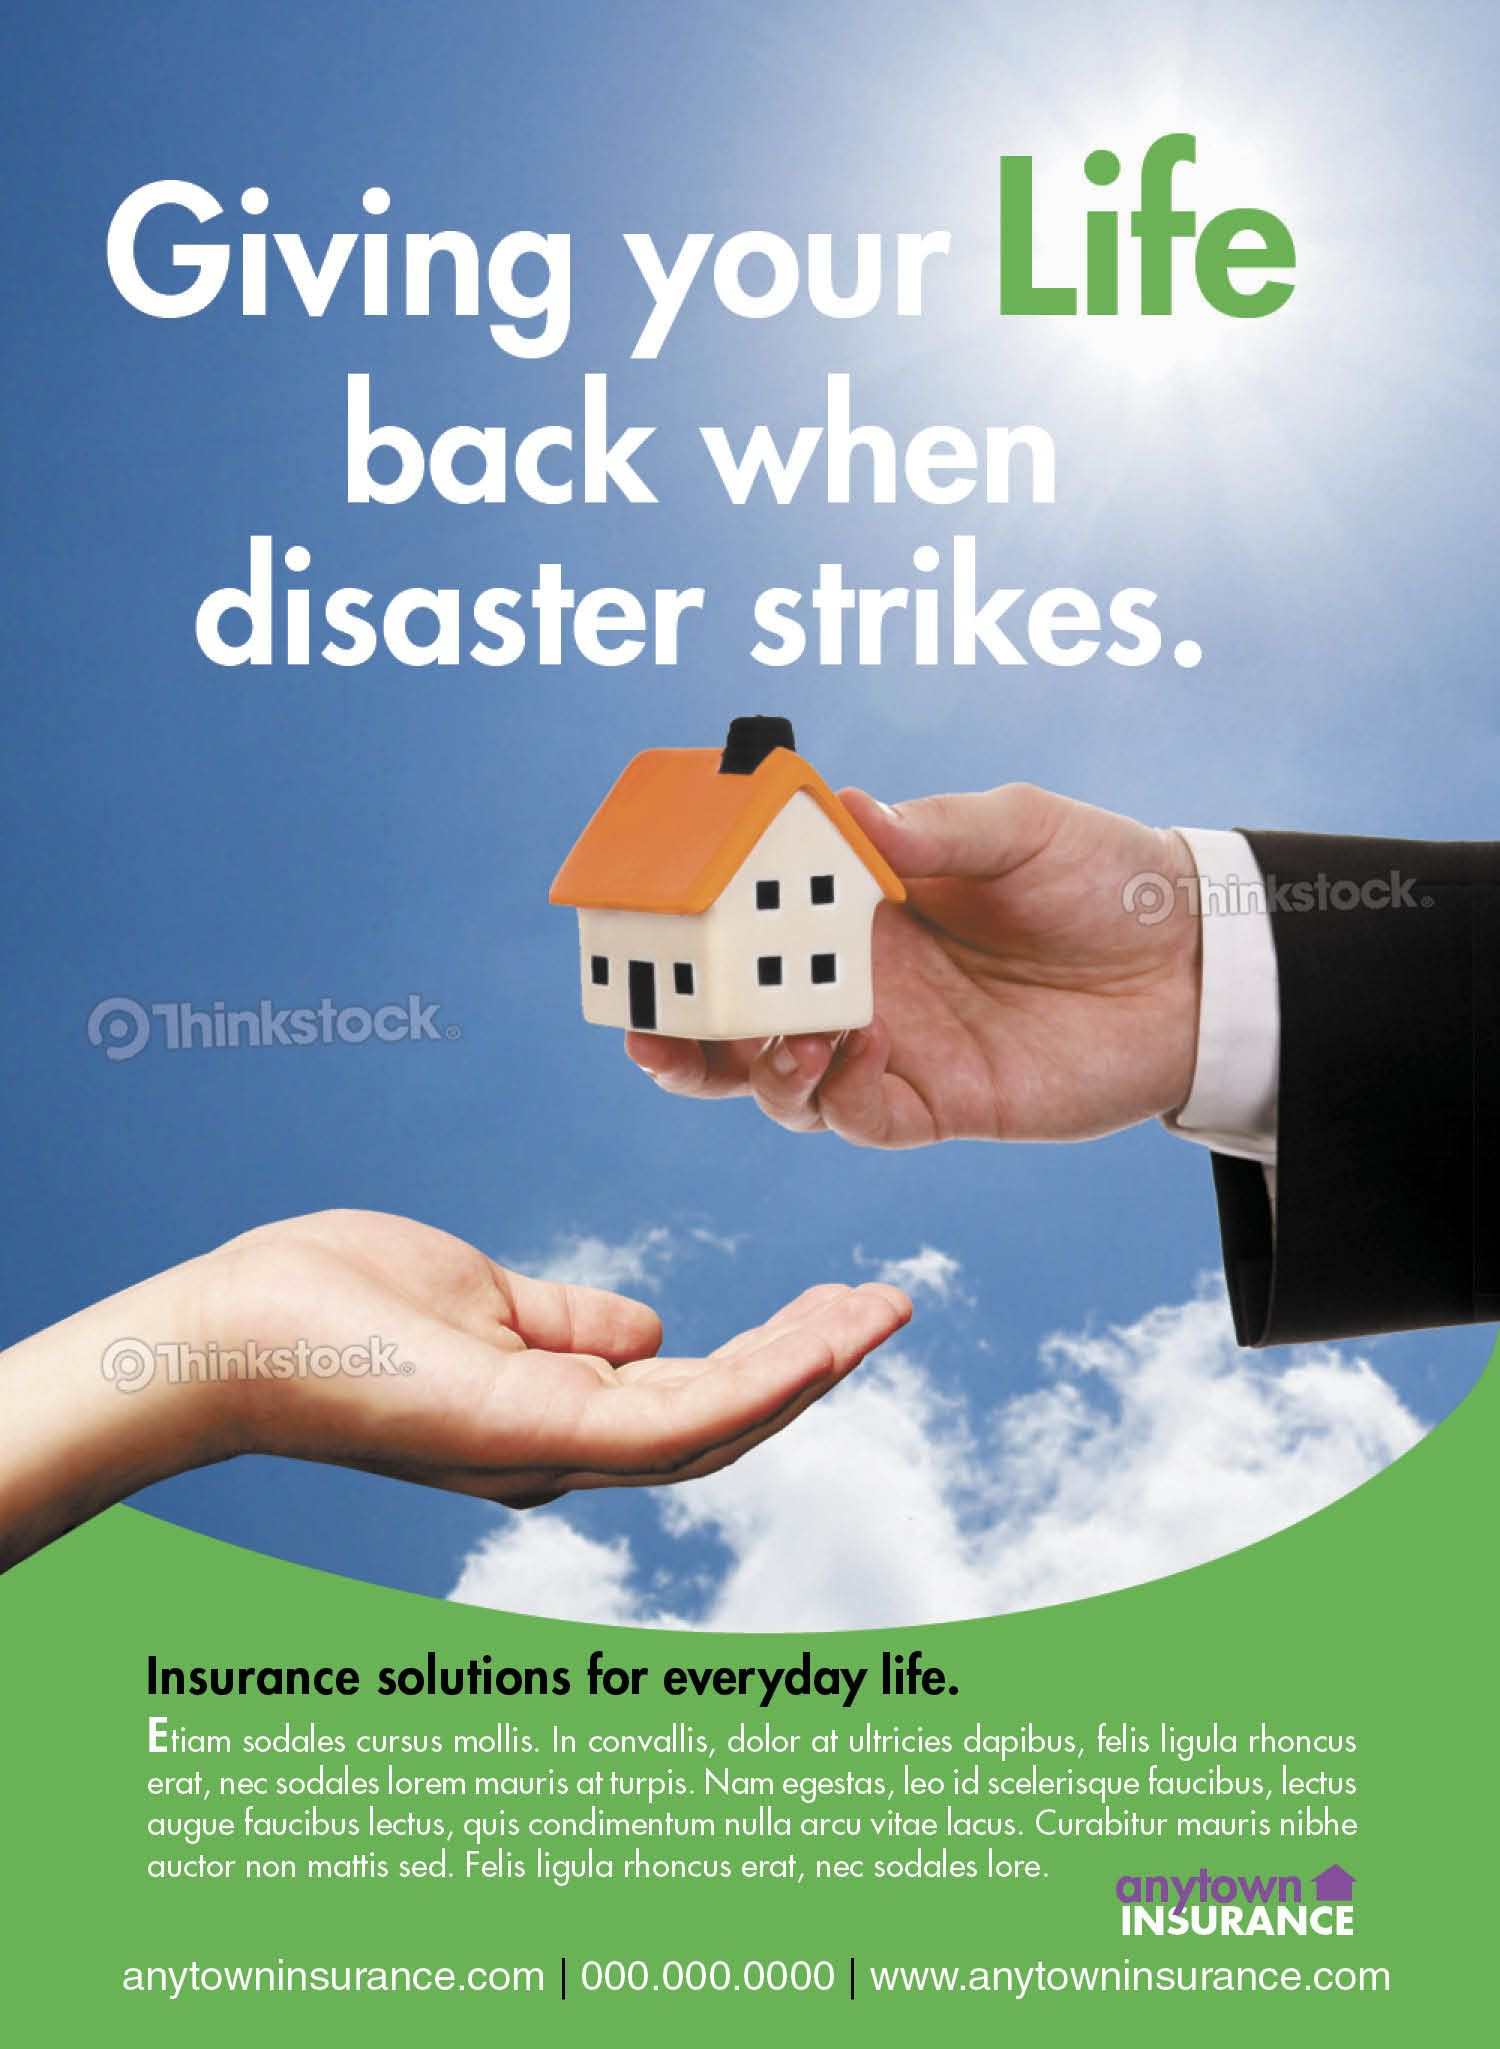 anytown_insurance Insurance ads, Life, Insurance